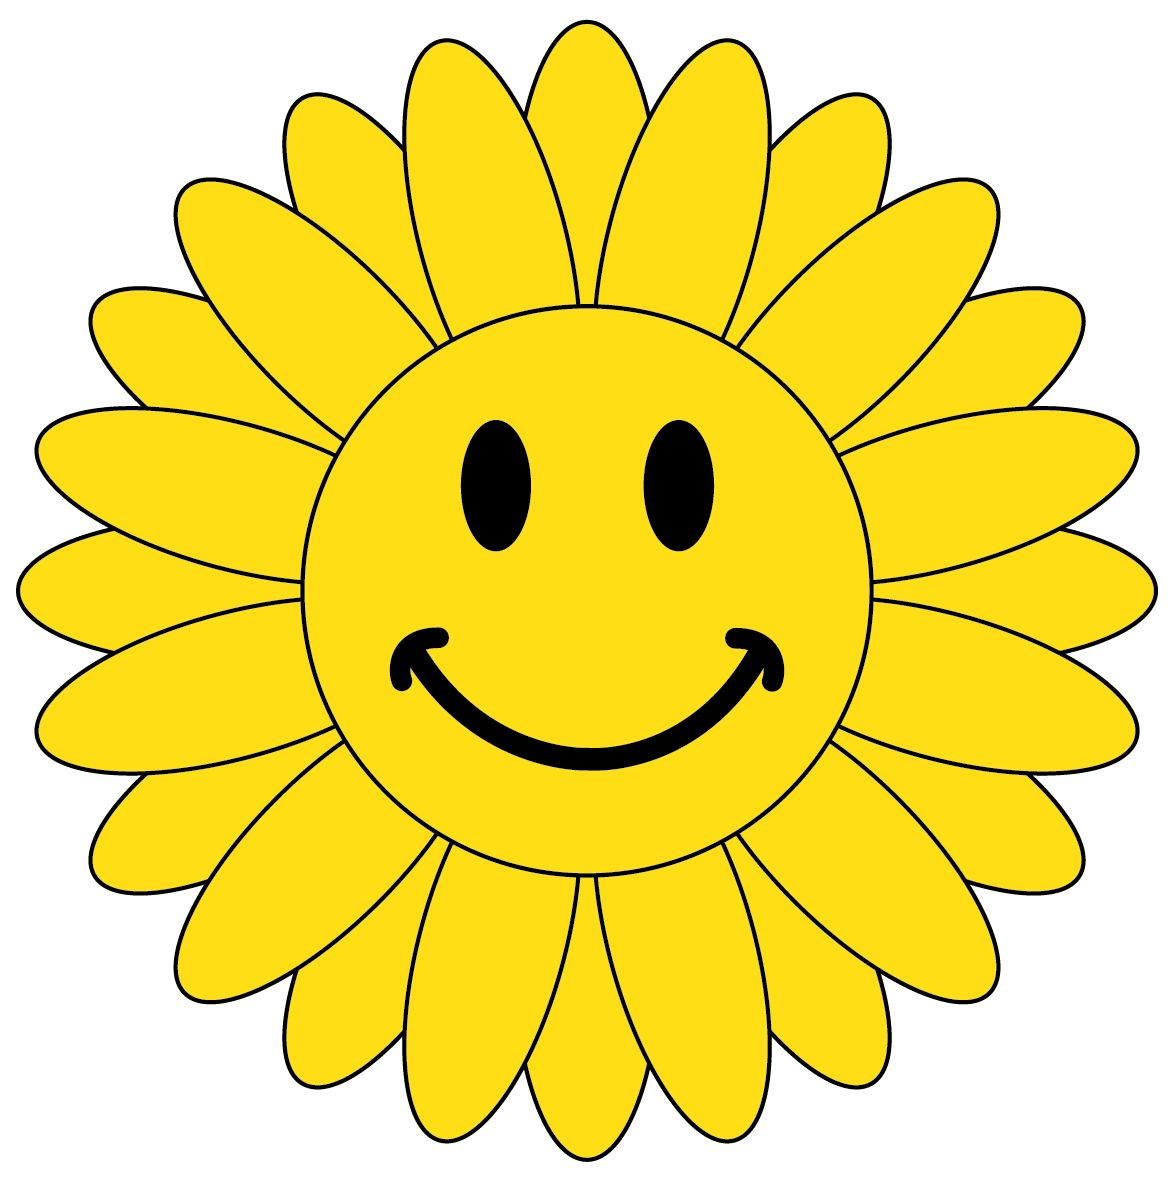 Moving Smiley Faces Clip Art.